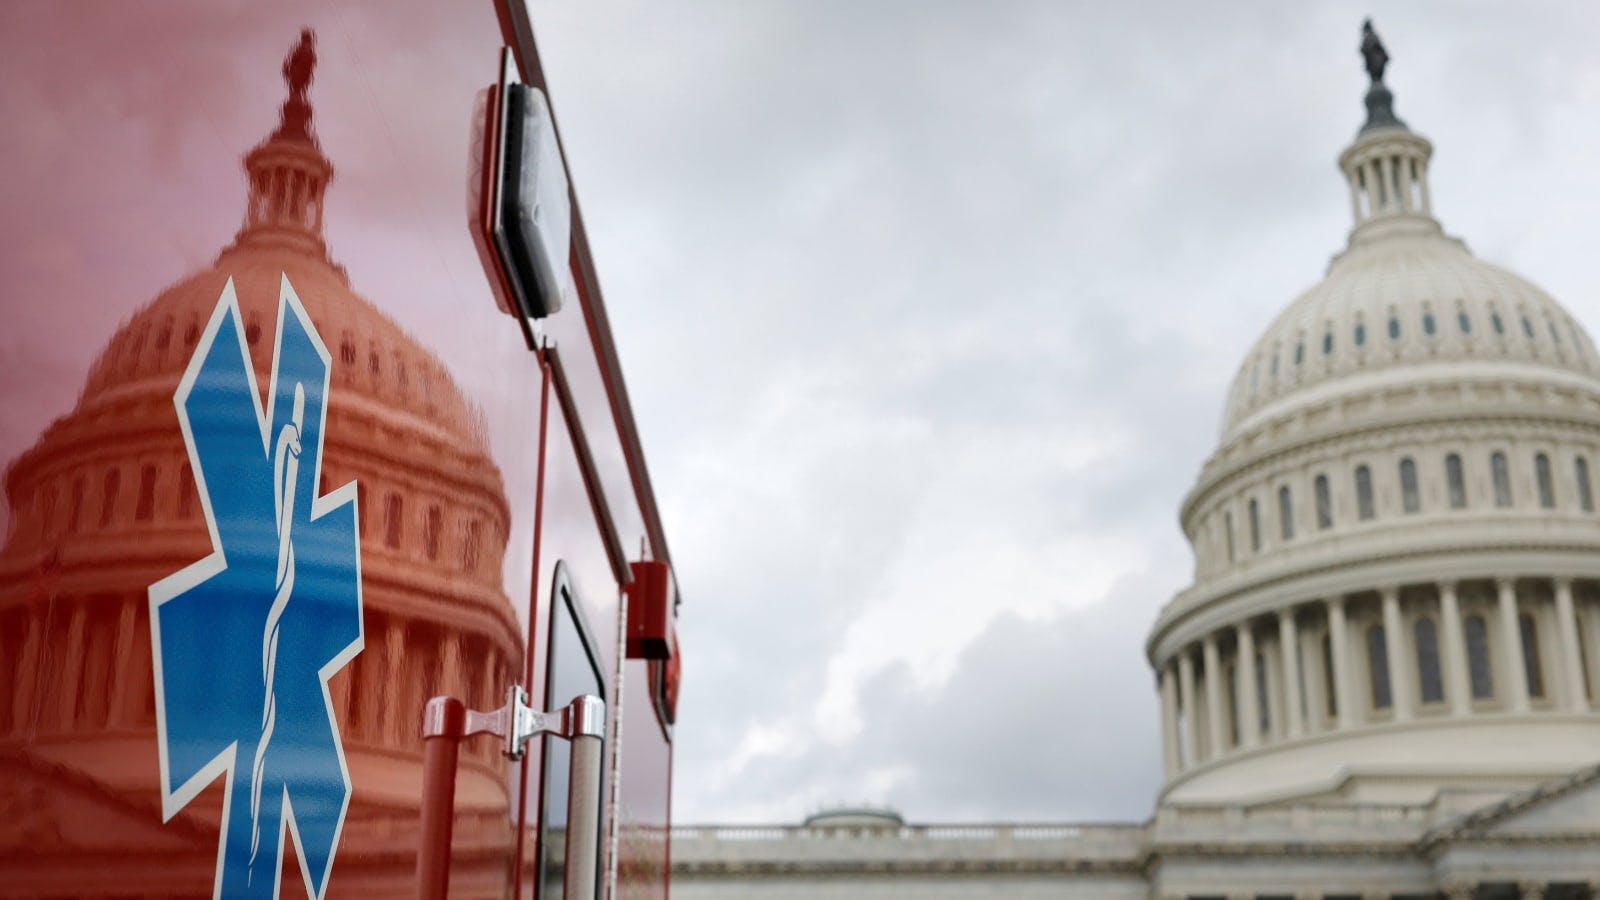 An ambulance parked next to the U.S. Capitol building.